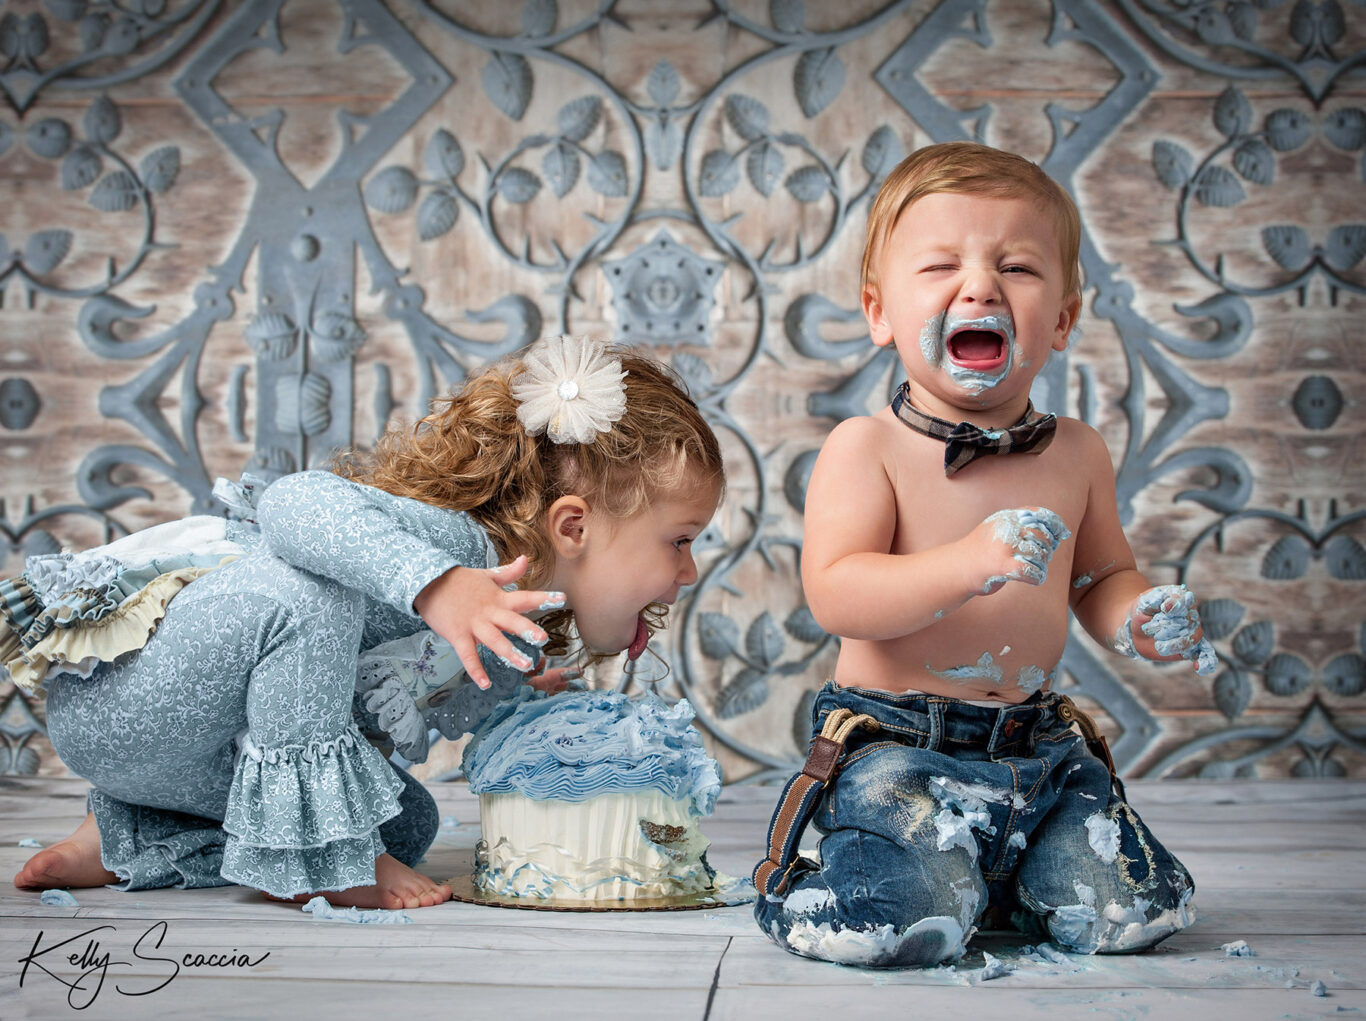 Little boy crying with cake on his face while his sister takes over the cake and begins to lick it